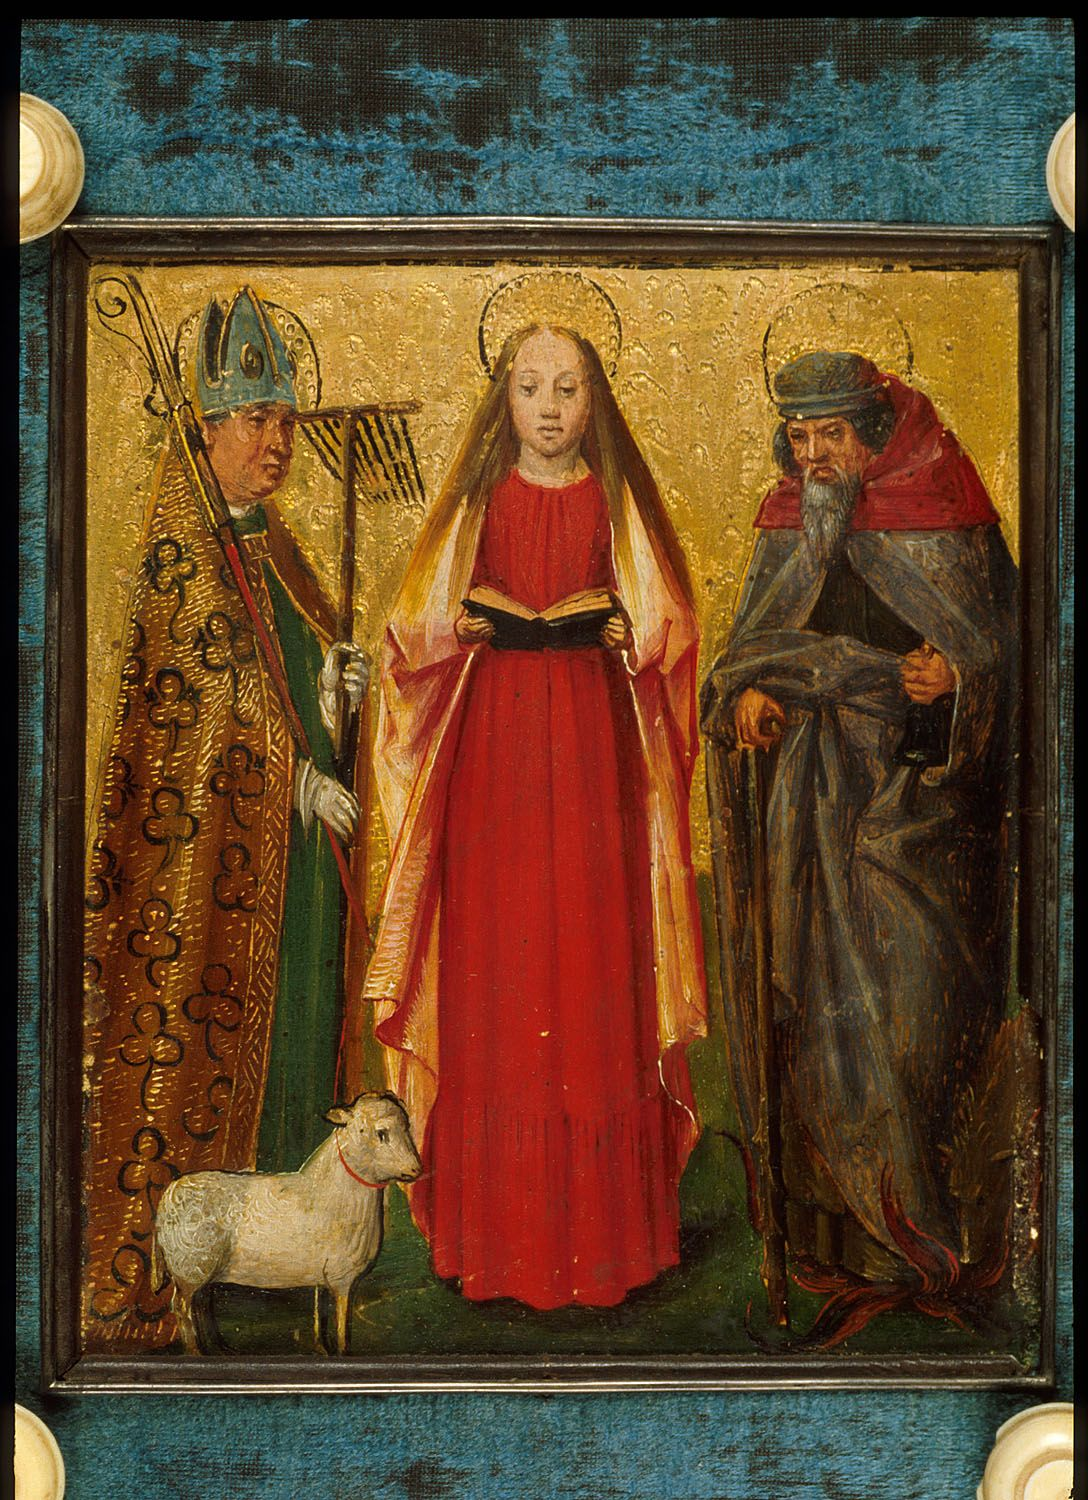 St Agnes flanked by St Blaise and St Anthony-Egerton 809, upper cover  Late 15th century possibly Bruges  The British Library, London